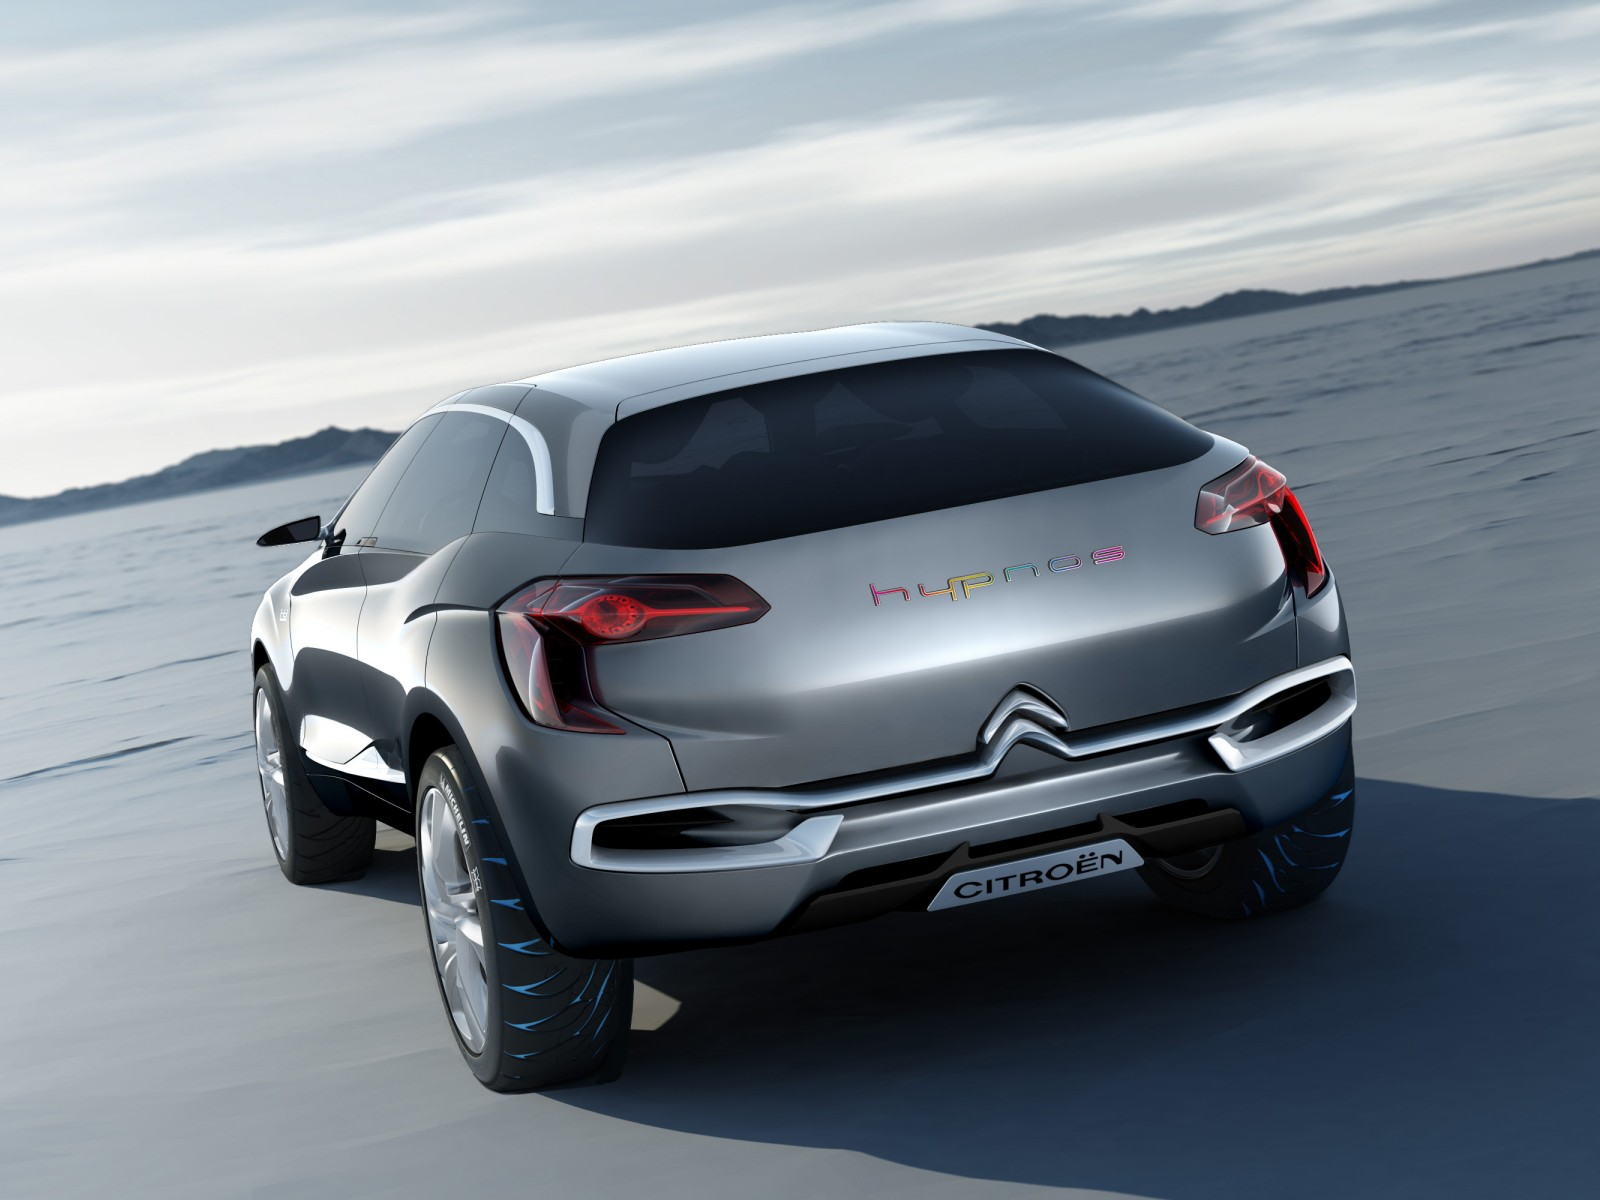 2008 citroen hypnos concept wallpapers pictures specifications technical specifications make citroen model hypnos concept vanachro Image collections